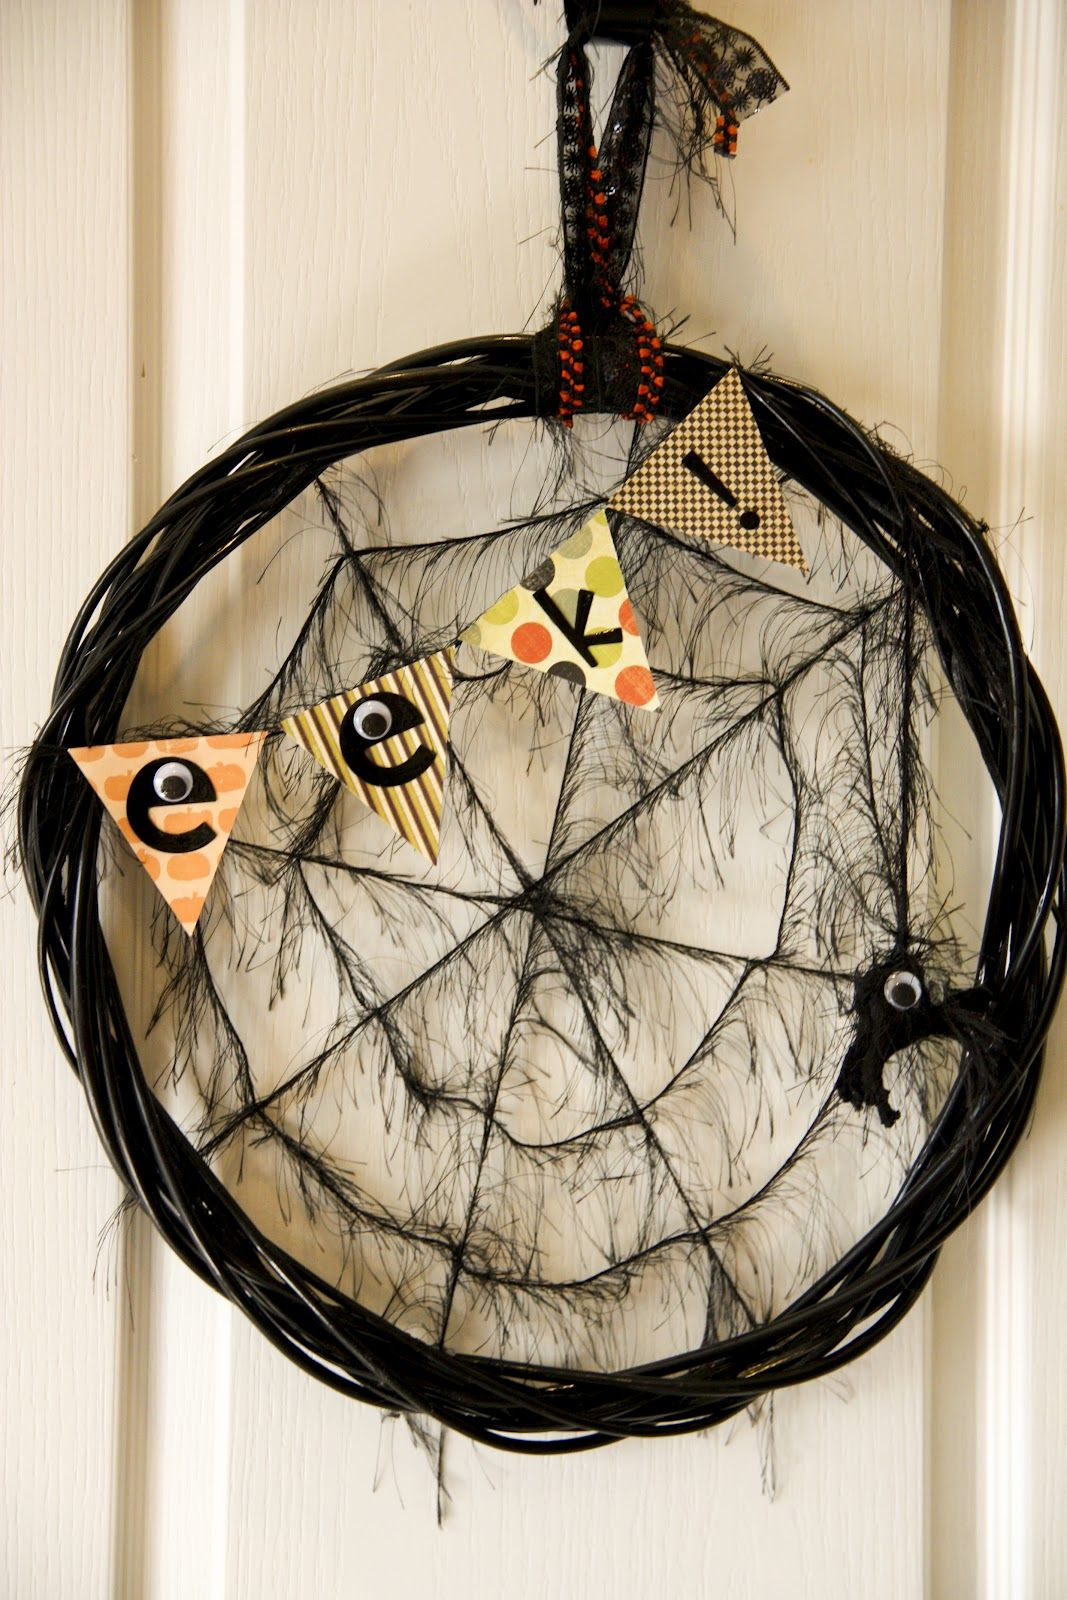 EEk Halloween Wreath DIY